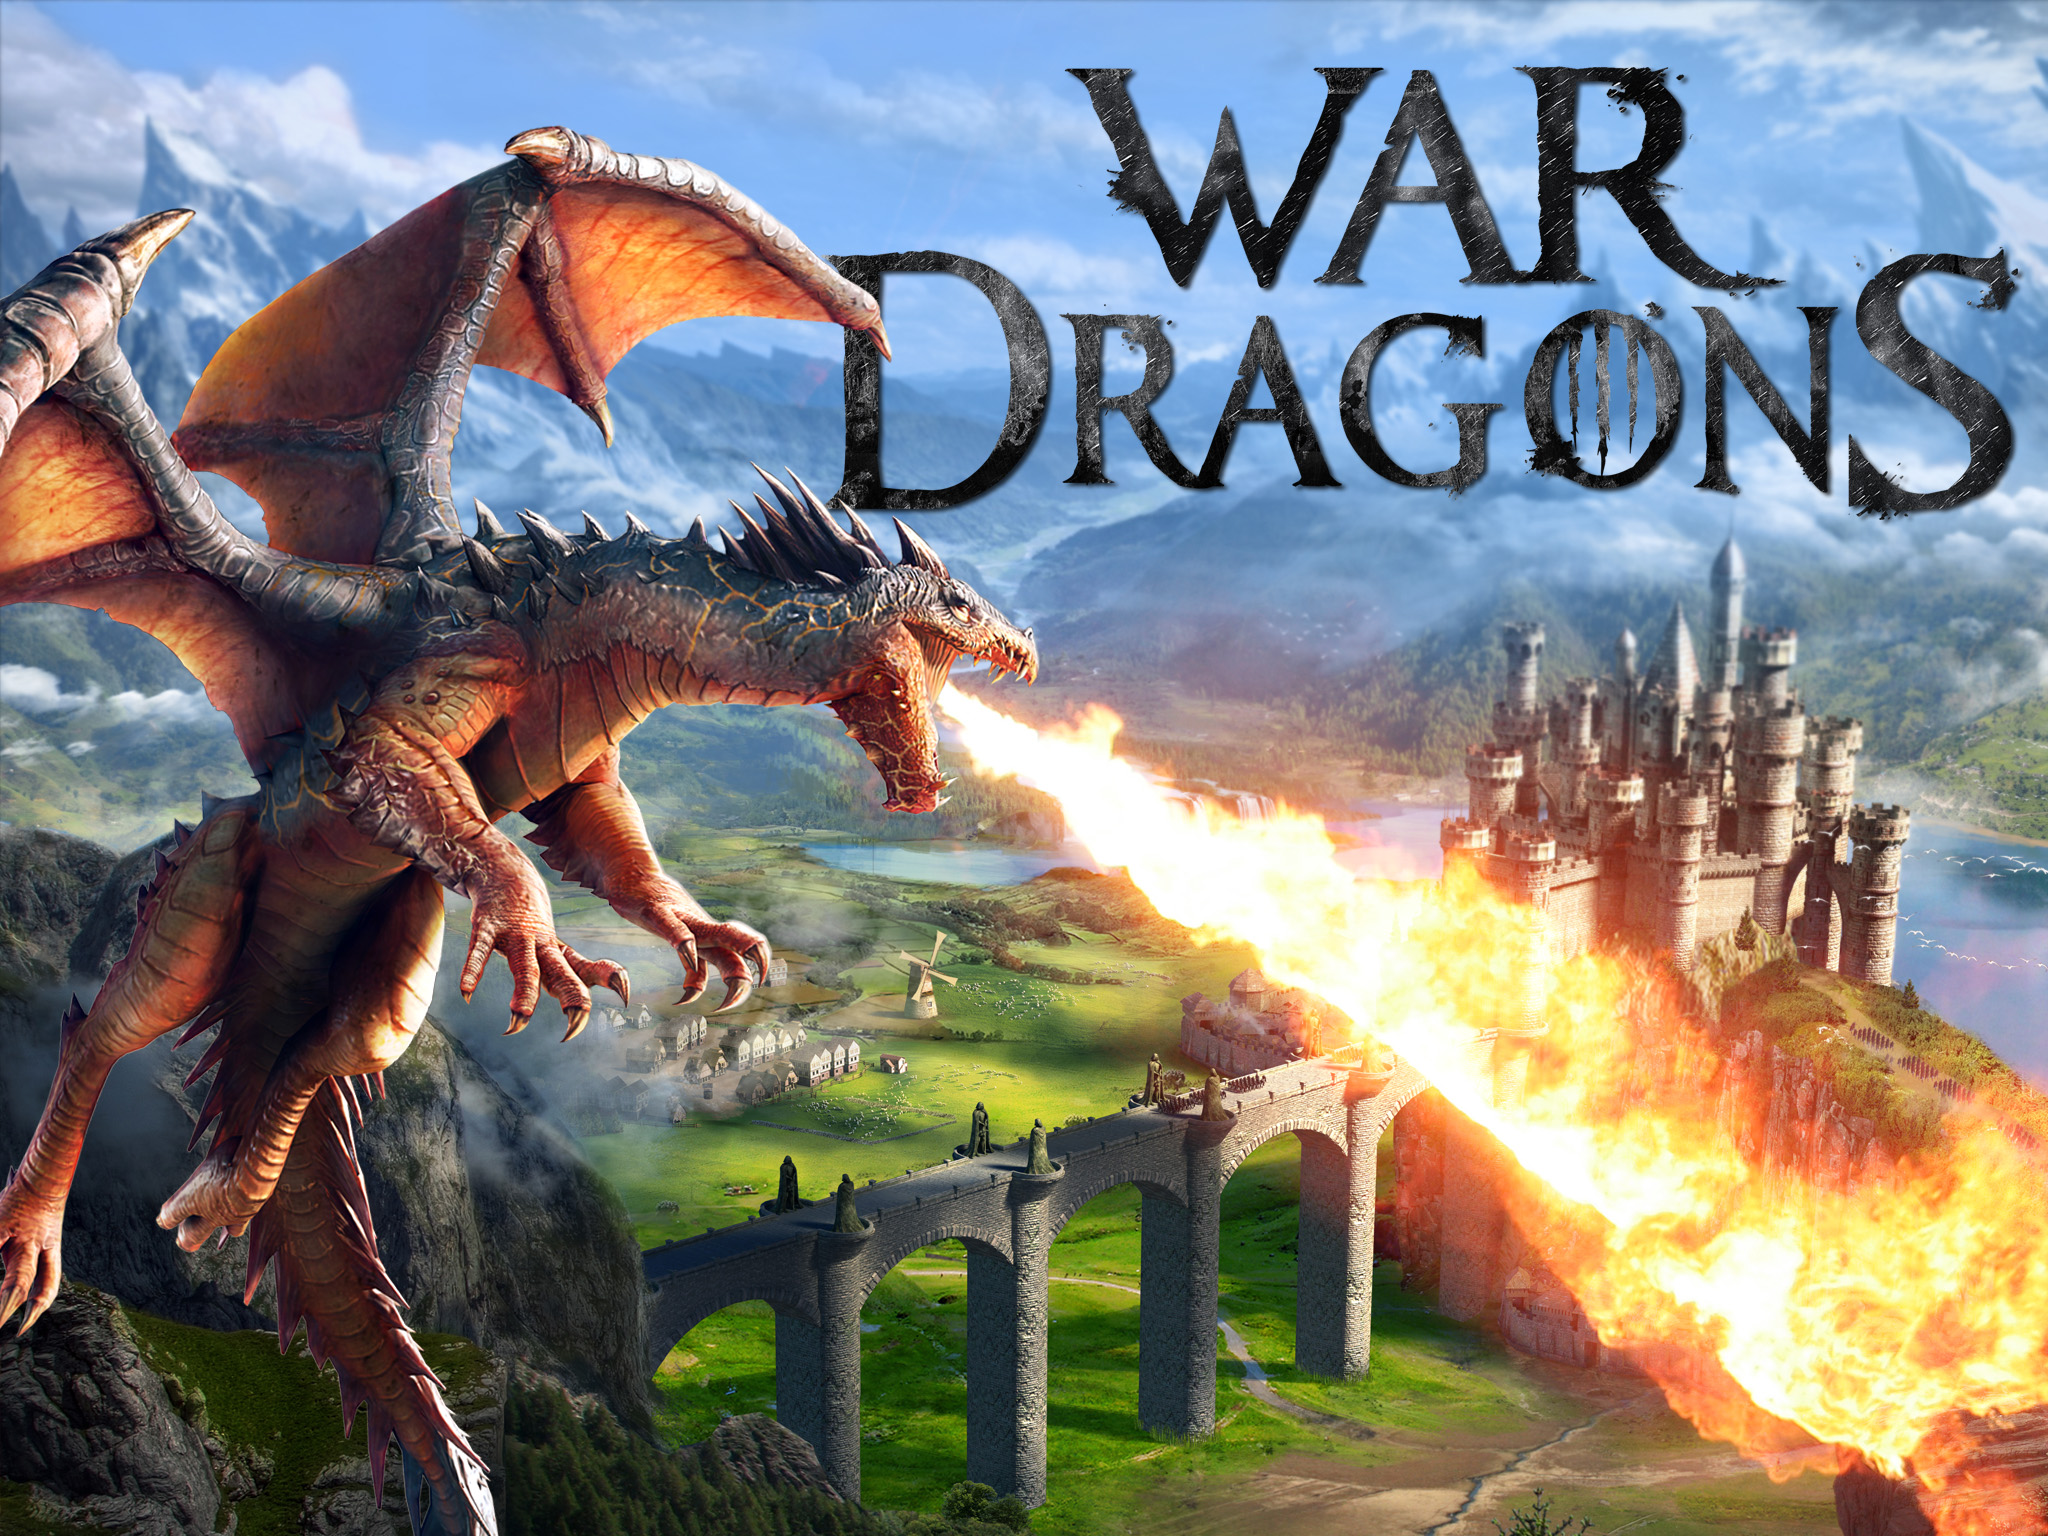 War Dragons 3-D real-time strategy game launches